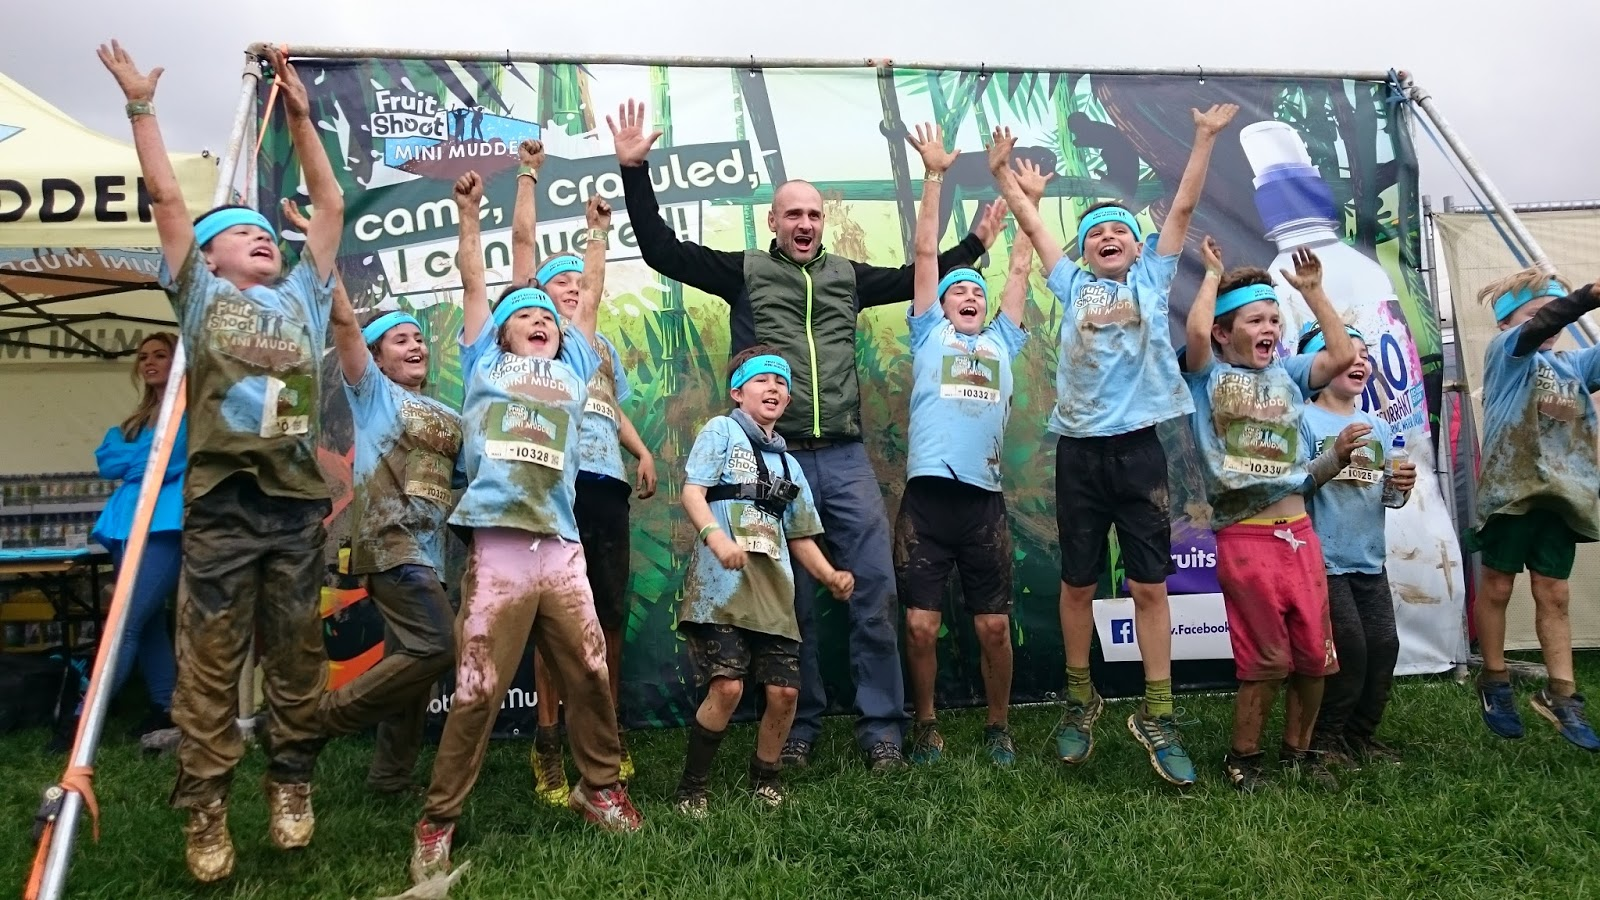 Shoot the fruit - Take A Look At The Fruit Shoot Mini Mudder Website And Find Your Closest Mini Mudder Event And Get The Family Up There To Get Muddy We Had A Ball Of A